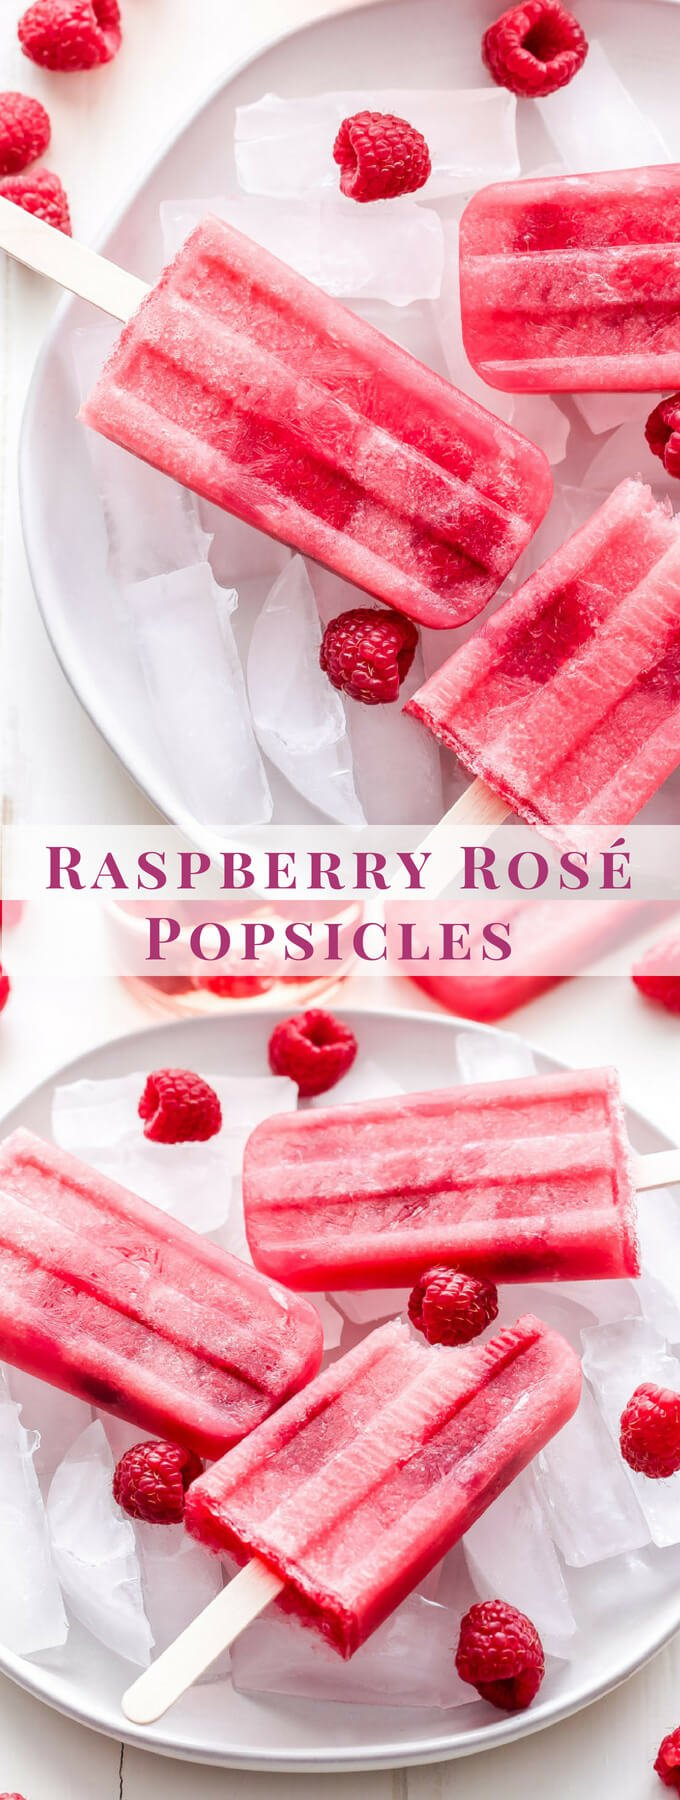 Raspberry Rosé Popsicles are the perfect summer treat for all the rosé lovers! These boozy wine popsicles will cool you off on a hot day and are sure to be a hit at your next party! #popsicles #rosé #raspberries #dessert